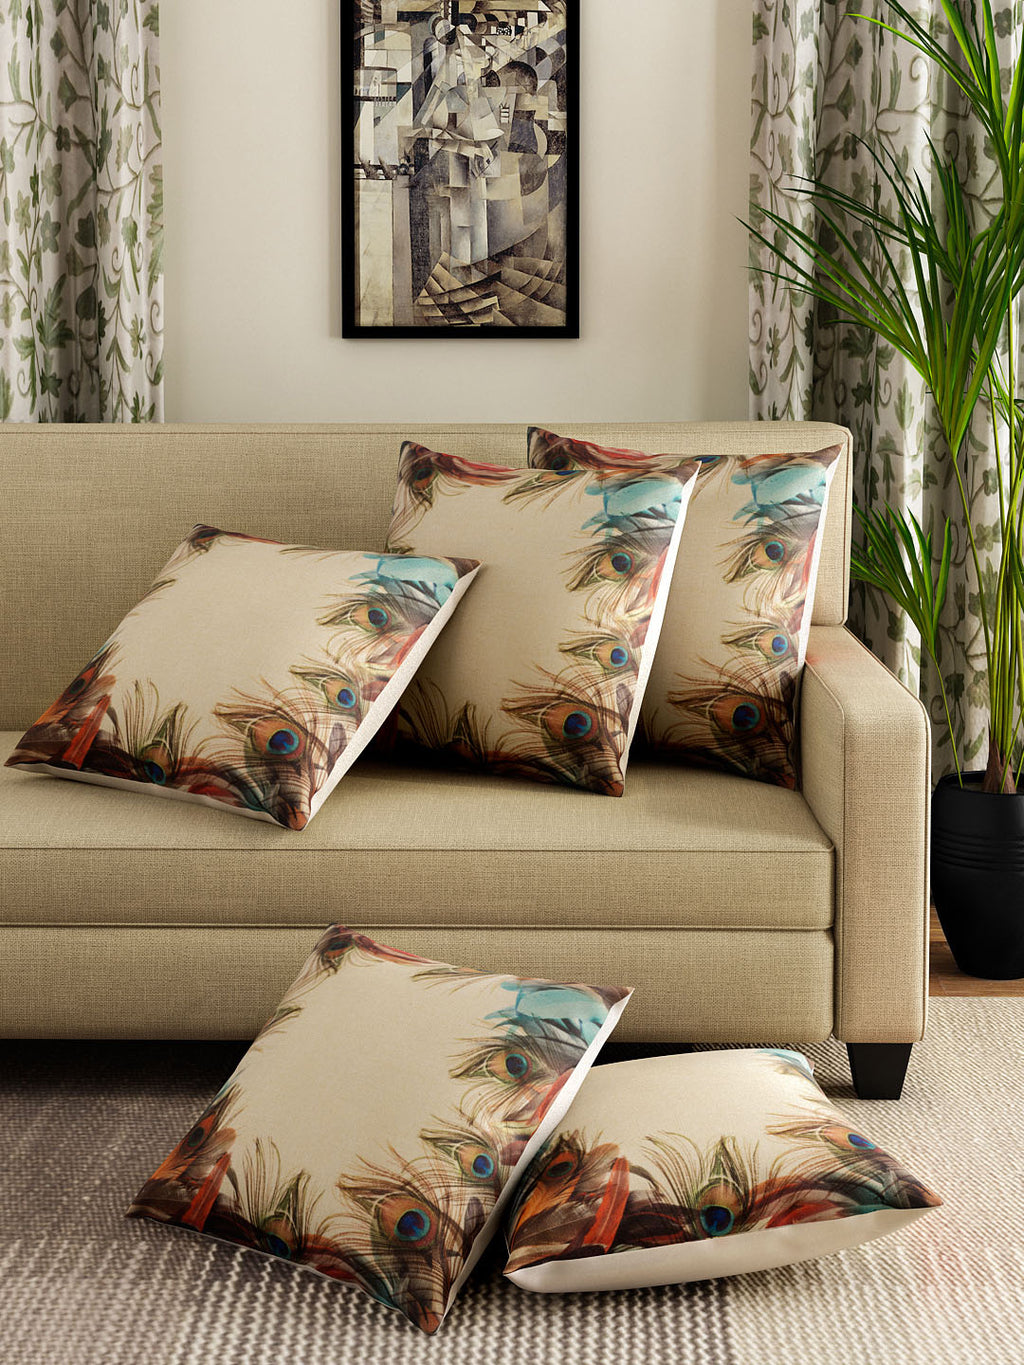 Detec™ Hosta Beige Color 16 x 16 inches Printed Cushion Cover (Set of 5 )